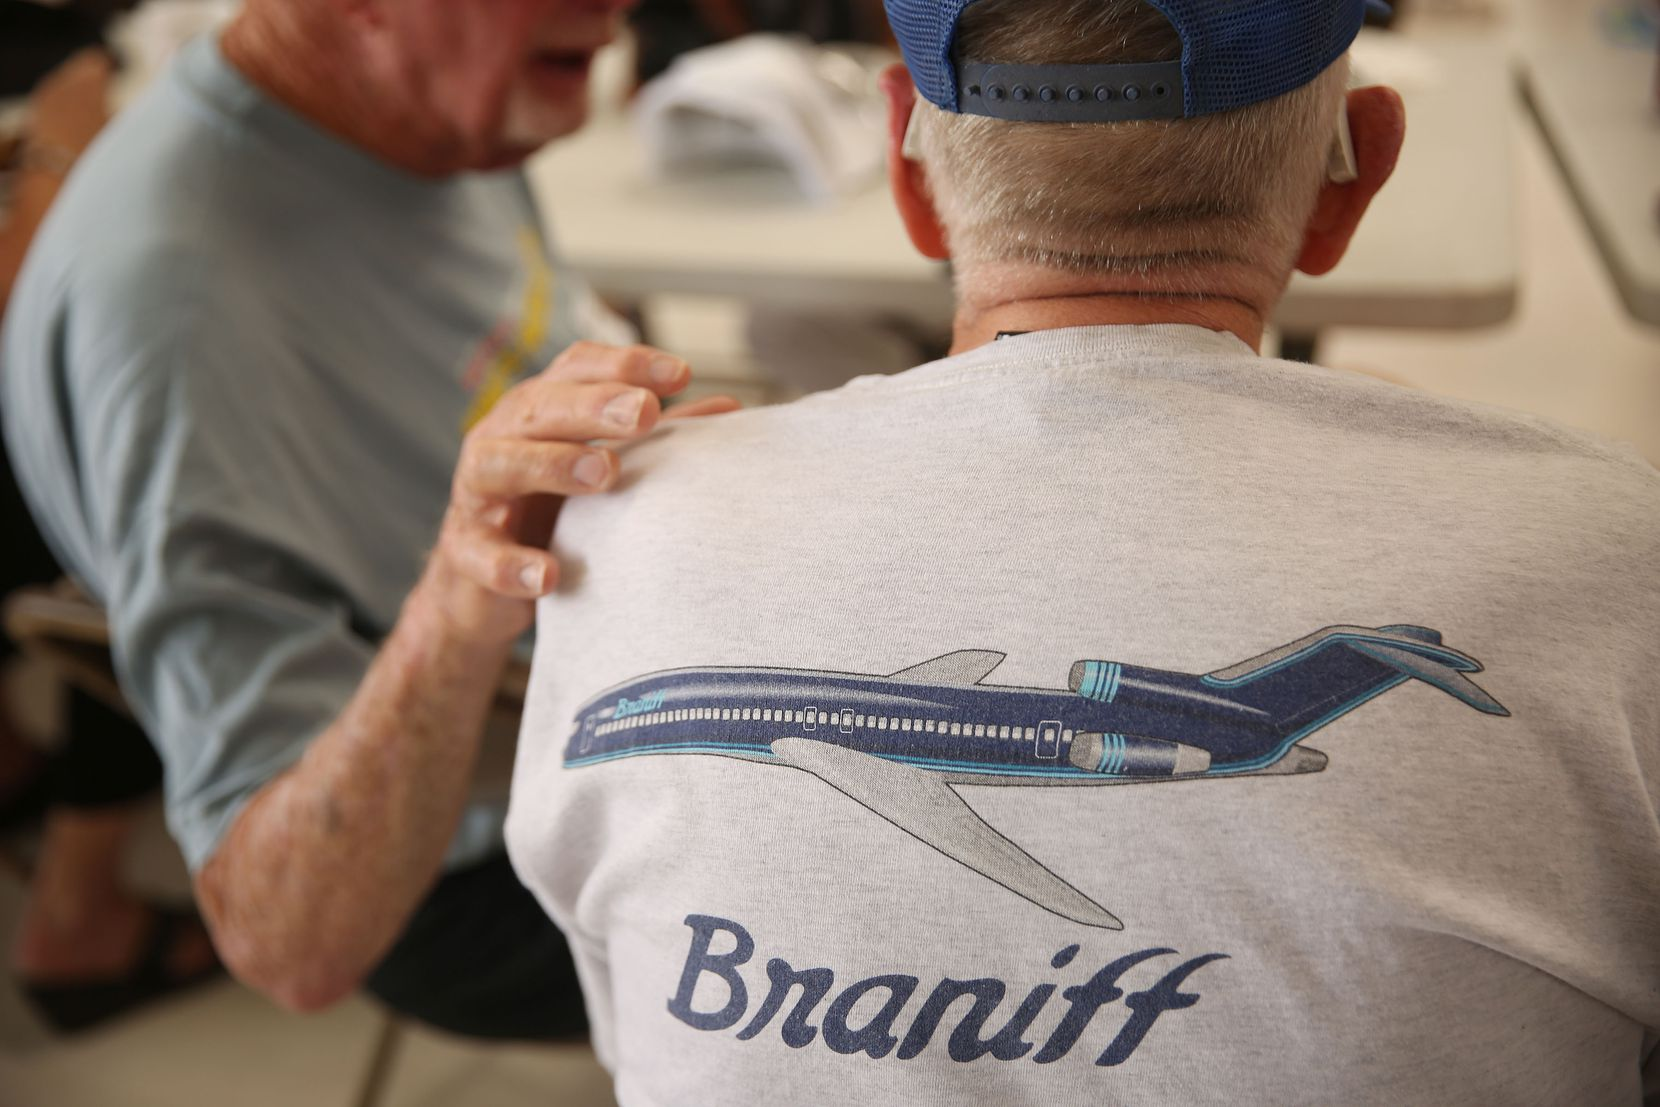 Charlie Monch (left) embraced Dale Eddy as the retired Braniff pilots visited during the 41st annual Braniff International Airways pilots picnic at Denton Municipal Airport on Monday.